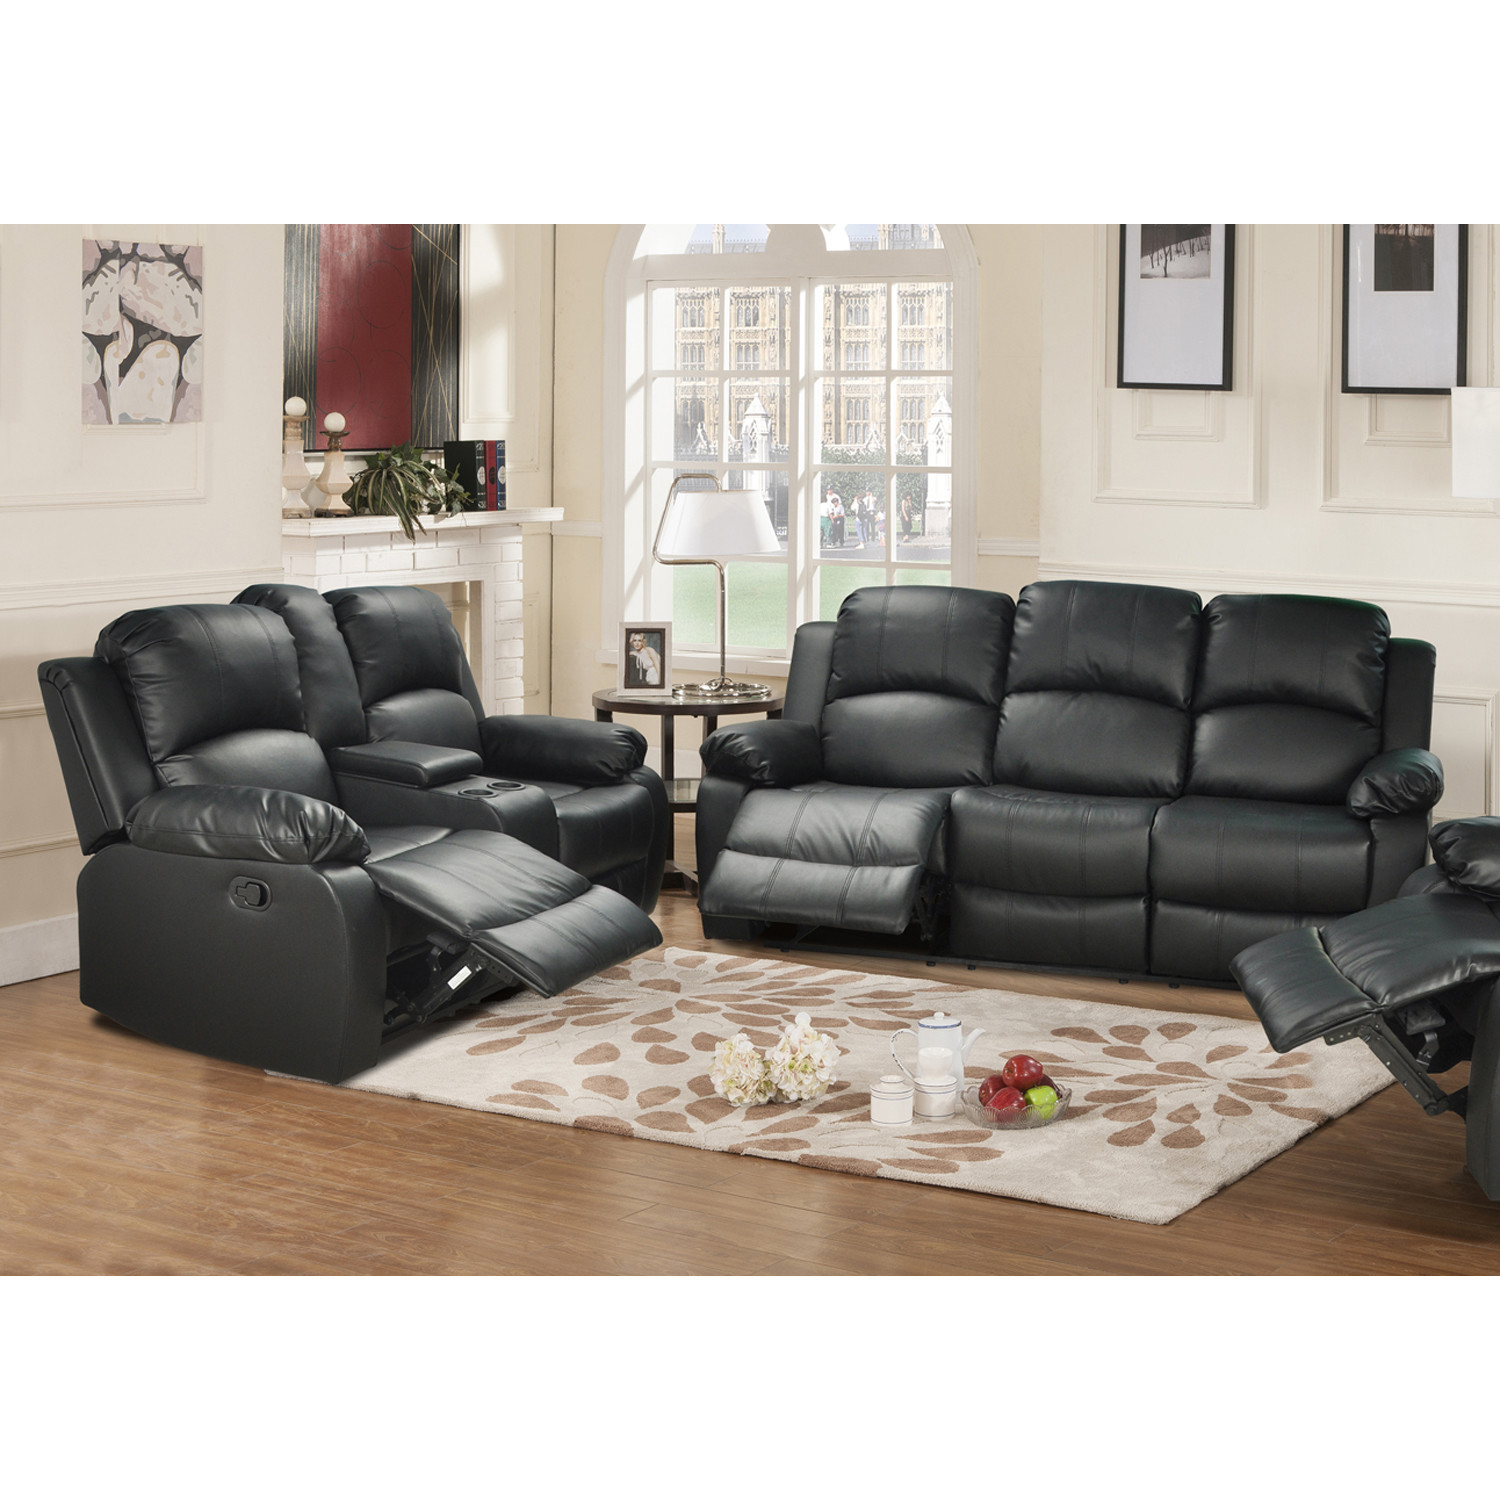 Best ideas about Wayfair Living Room Furniture . Save or Pin Beverly Fine Furniture Amado 2 Piece Leather Reclining Now.